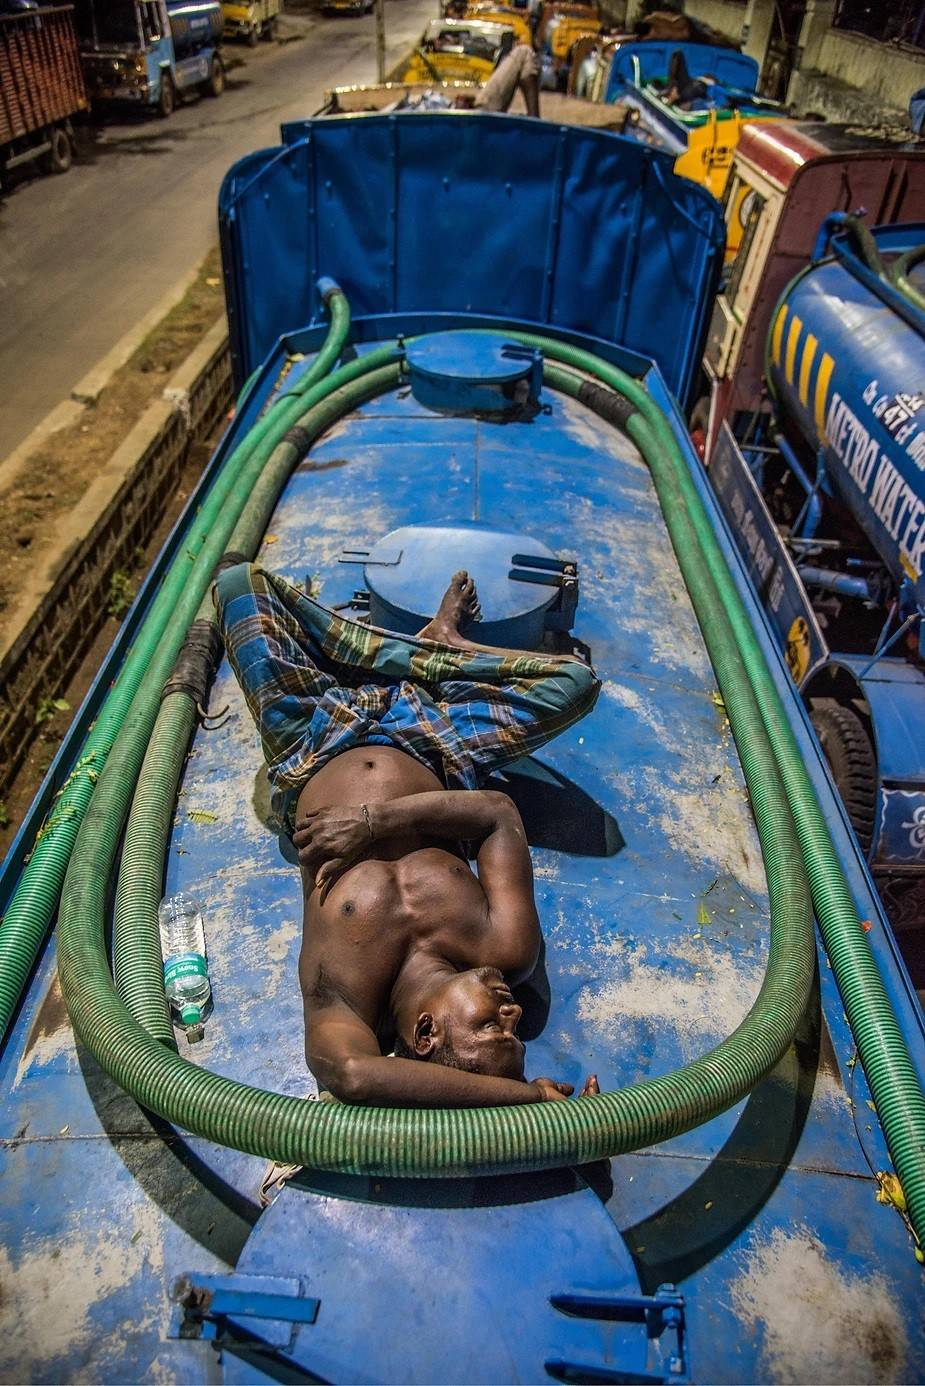 A tired driver sleeping on his water tanker in K.K.Nagar Metro water pumping station, Chennai. Photo by: Steevez Rodriguez/PEP Collective.